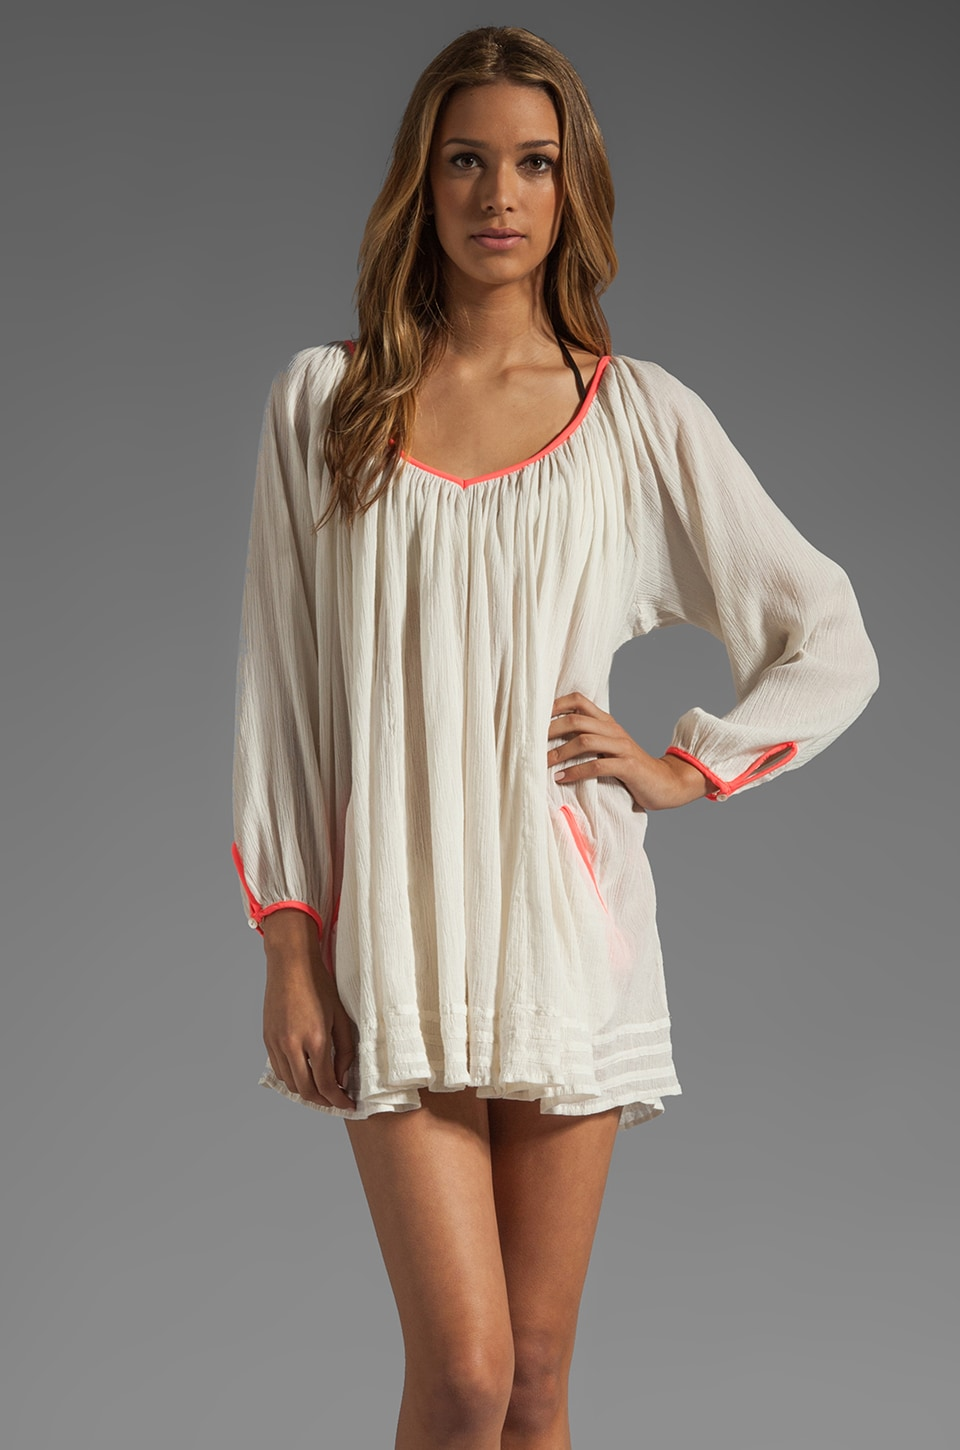 Basta Surf Capri Mini Dress in Ivory/Coral